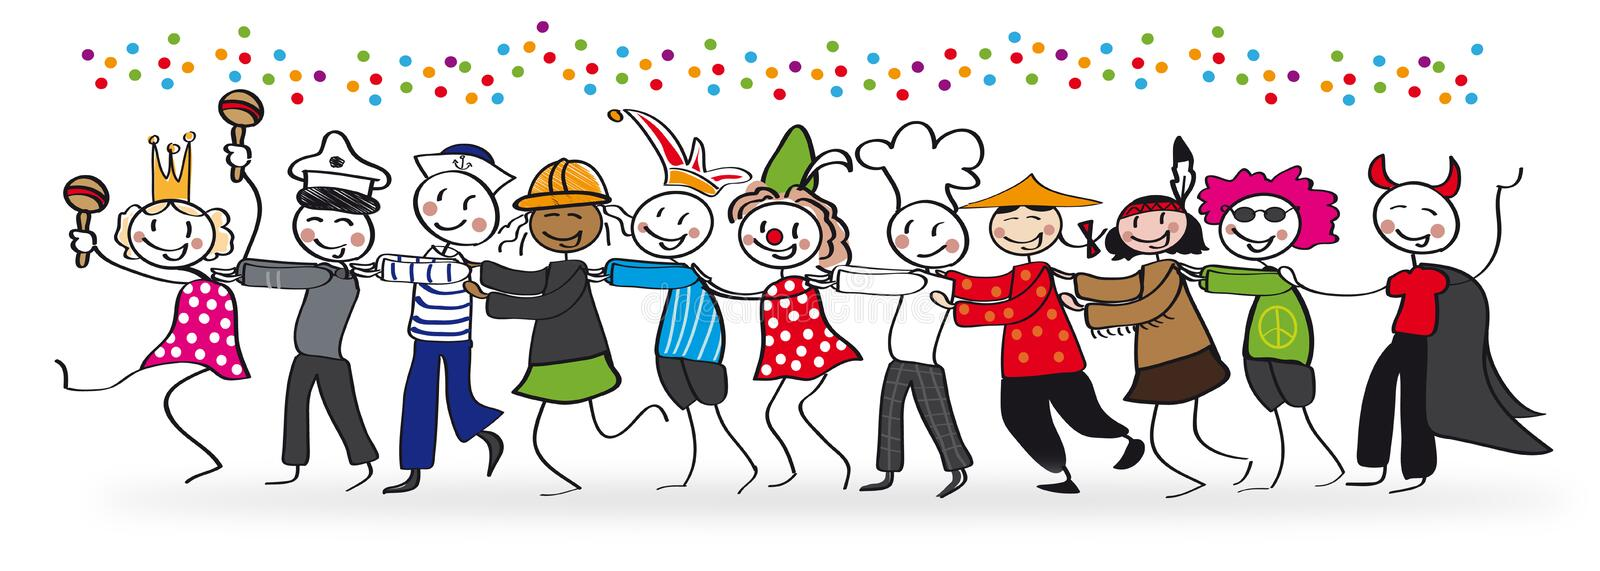 People celebrating Carnival. Group of costumed people celebrating Carnival stock illustration